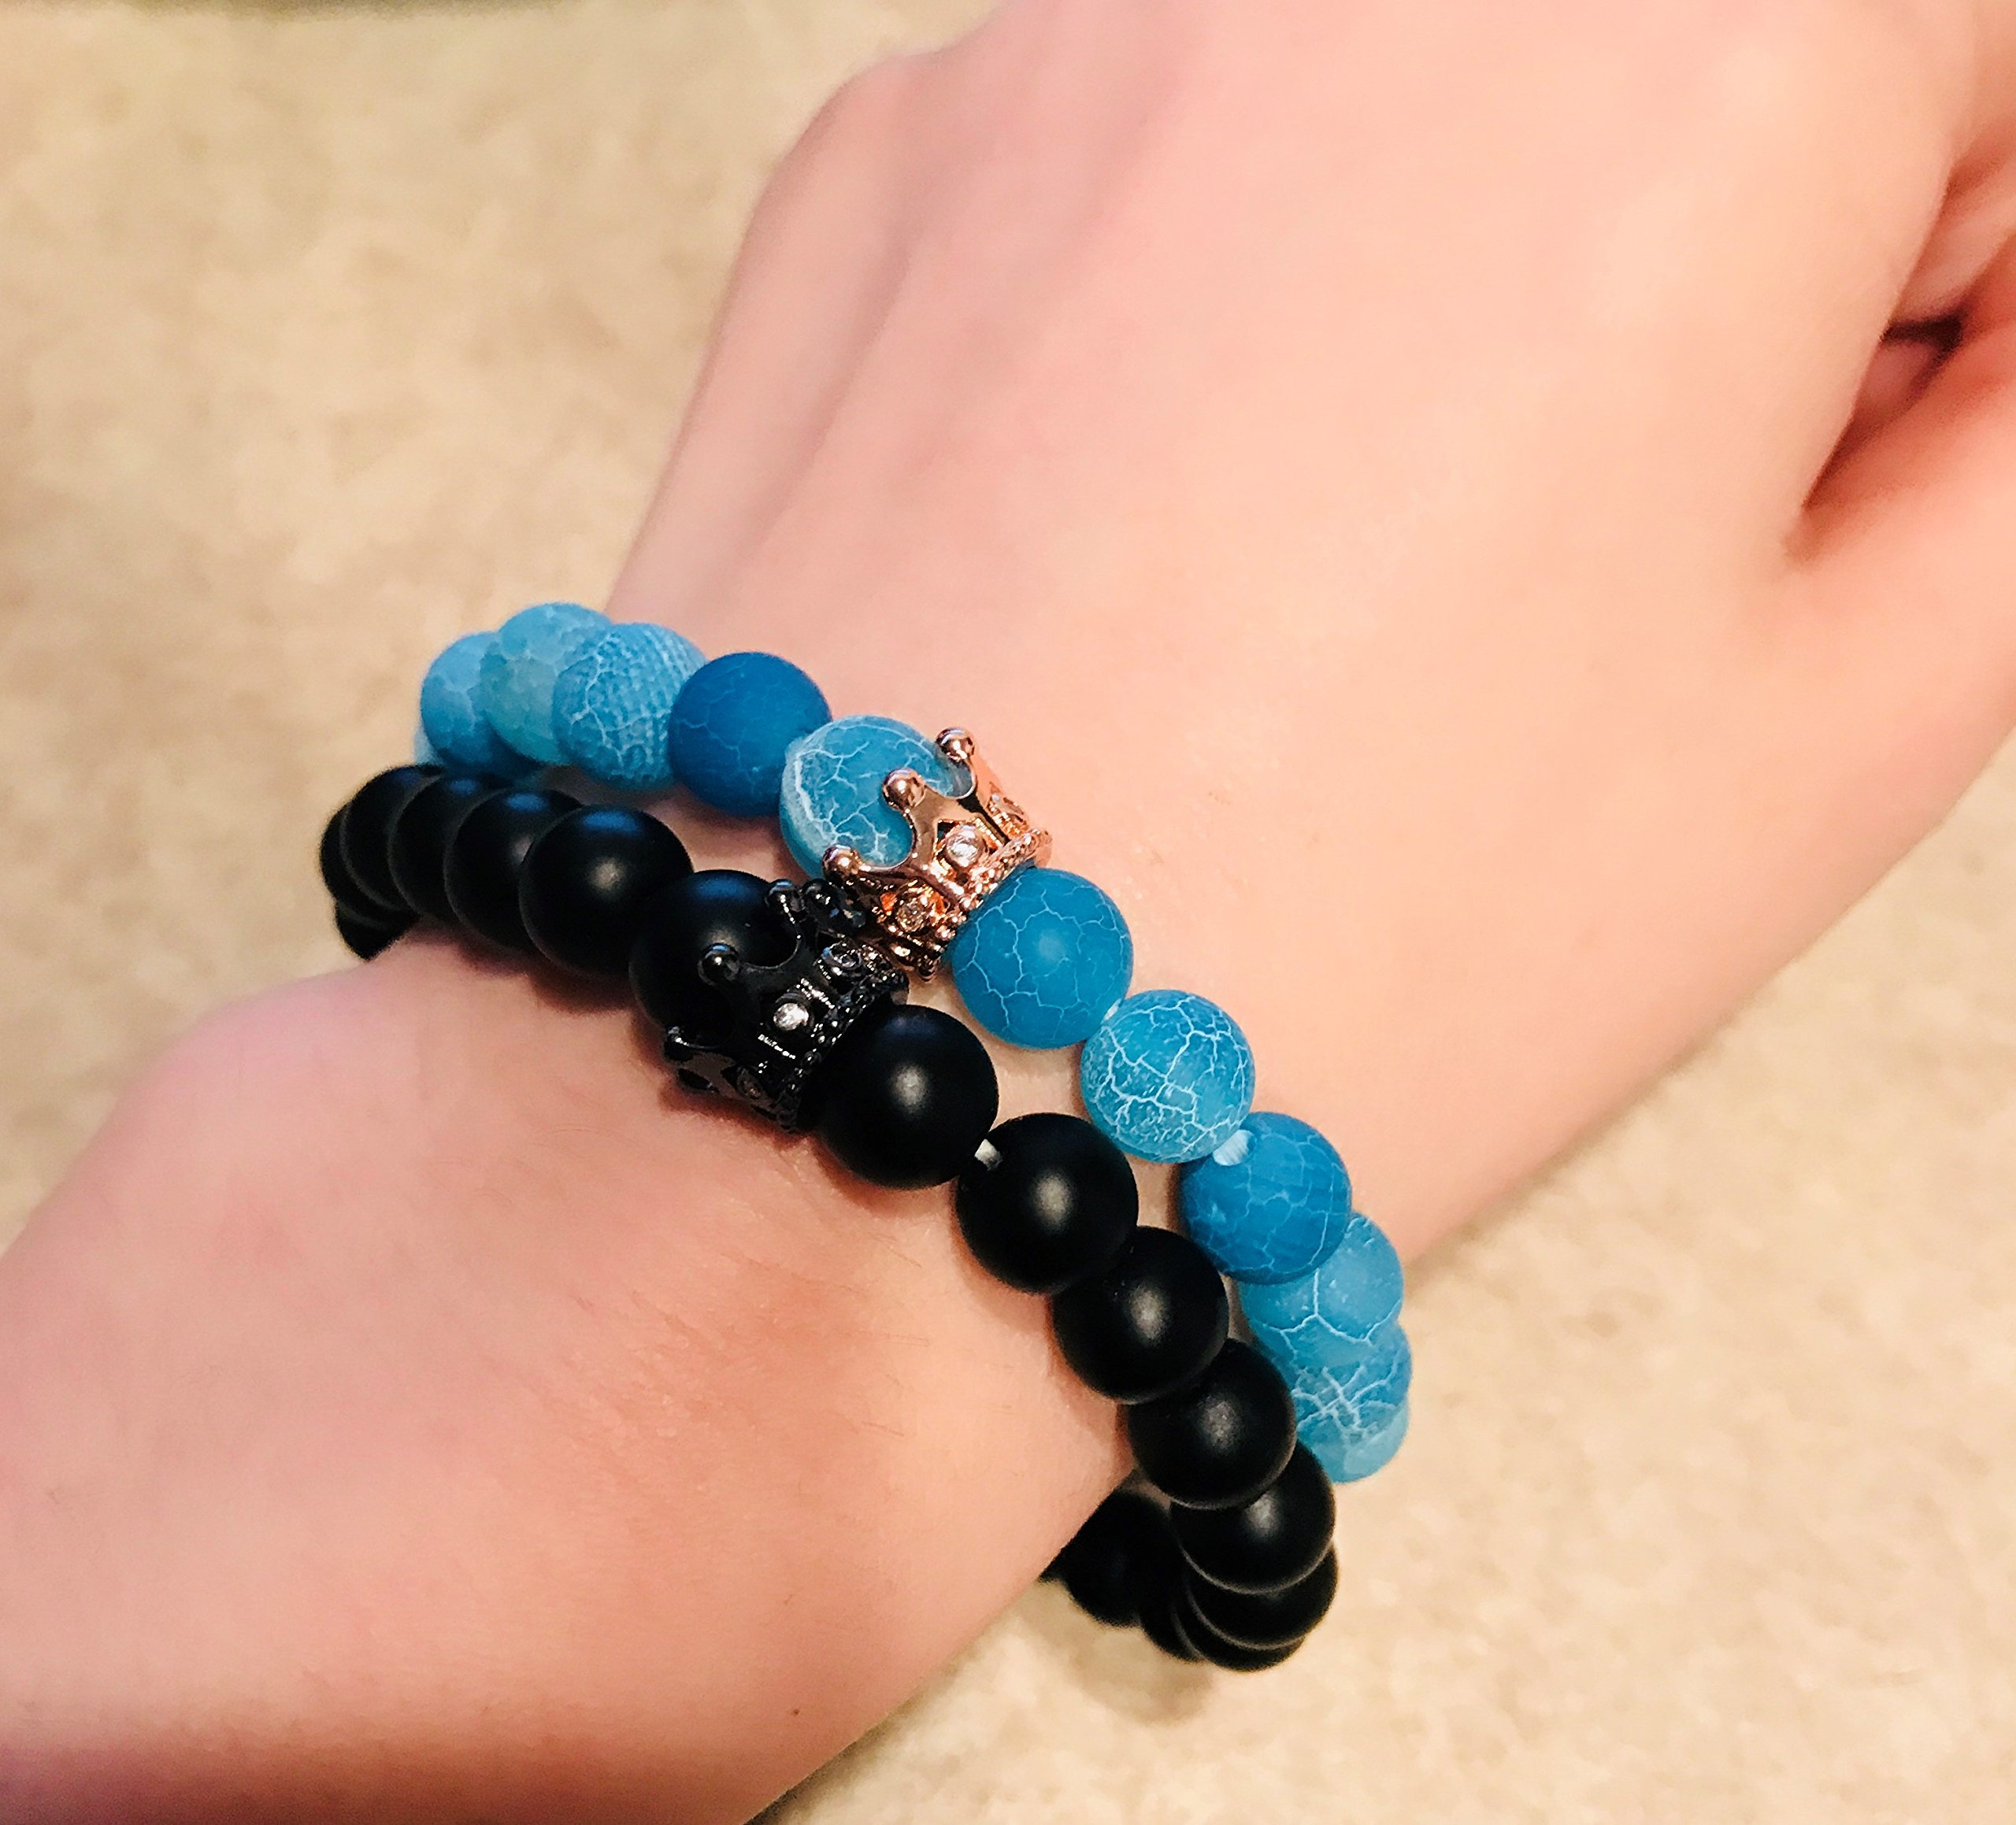 ISAACSONG.DESIGN Unisex Prayer Healing Round Natural Lava Turquoise Stone 8mm Beads Stretch Bracelet with Charms (Black Matte Agate & Blue Agate) by ISAACSONG.DESIGN (Image #4)